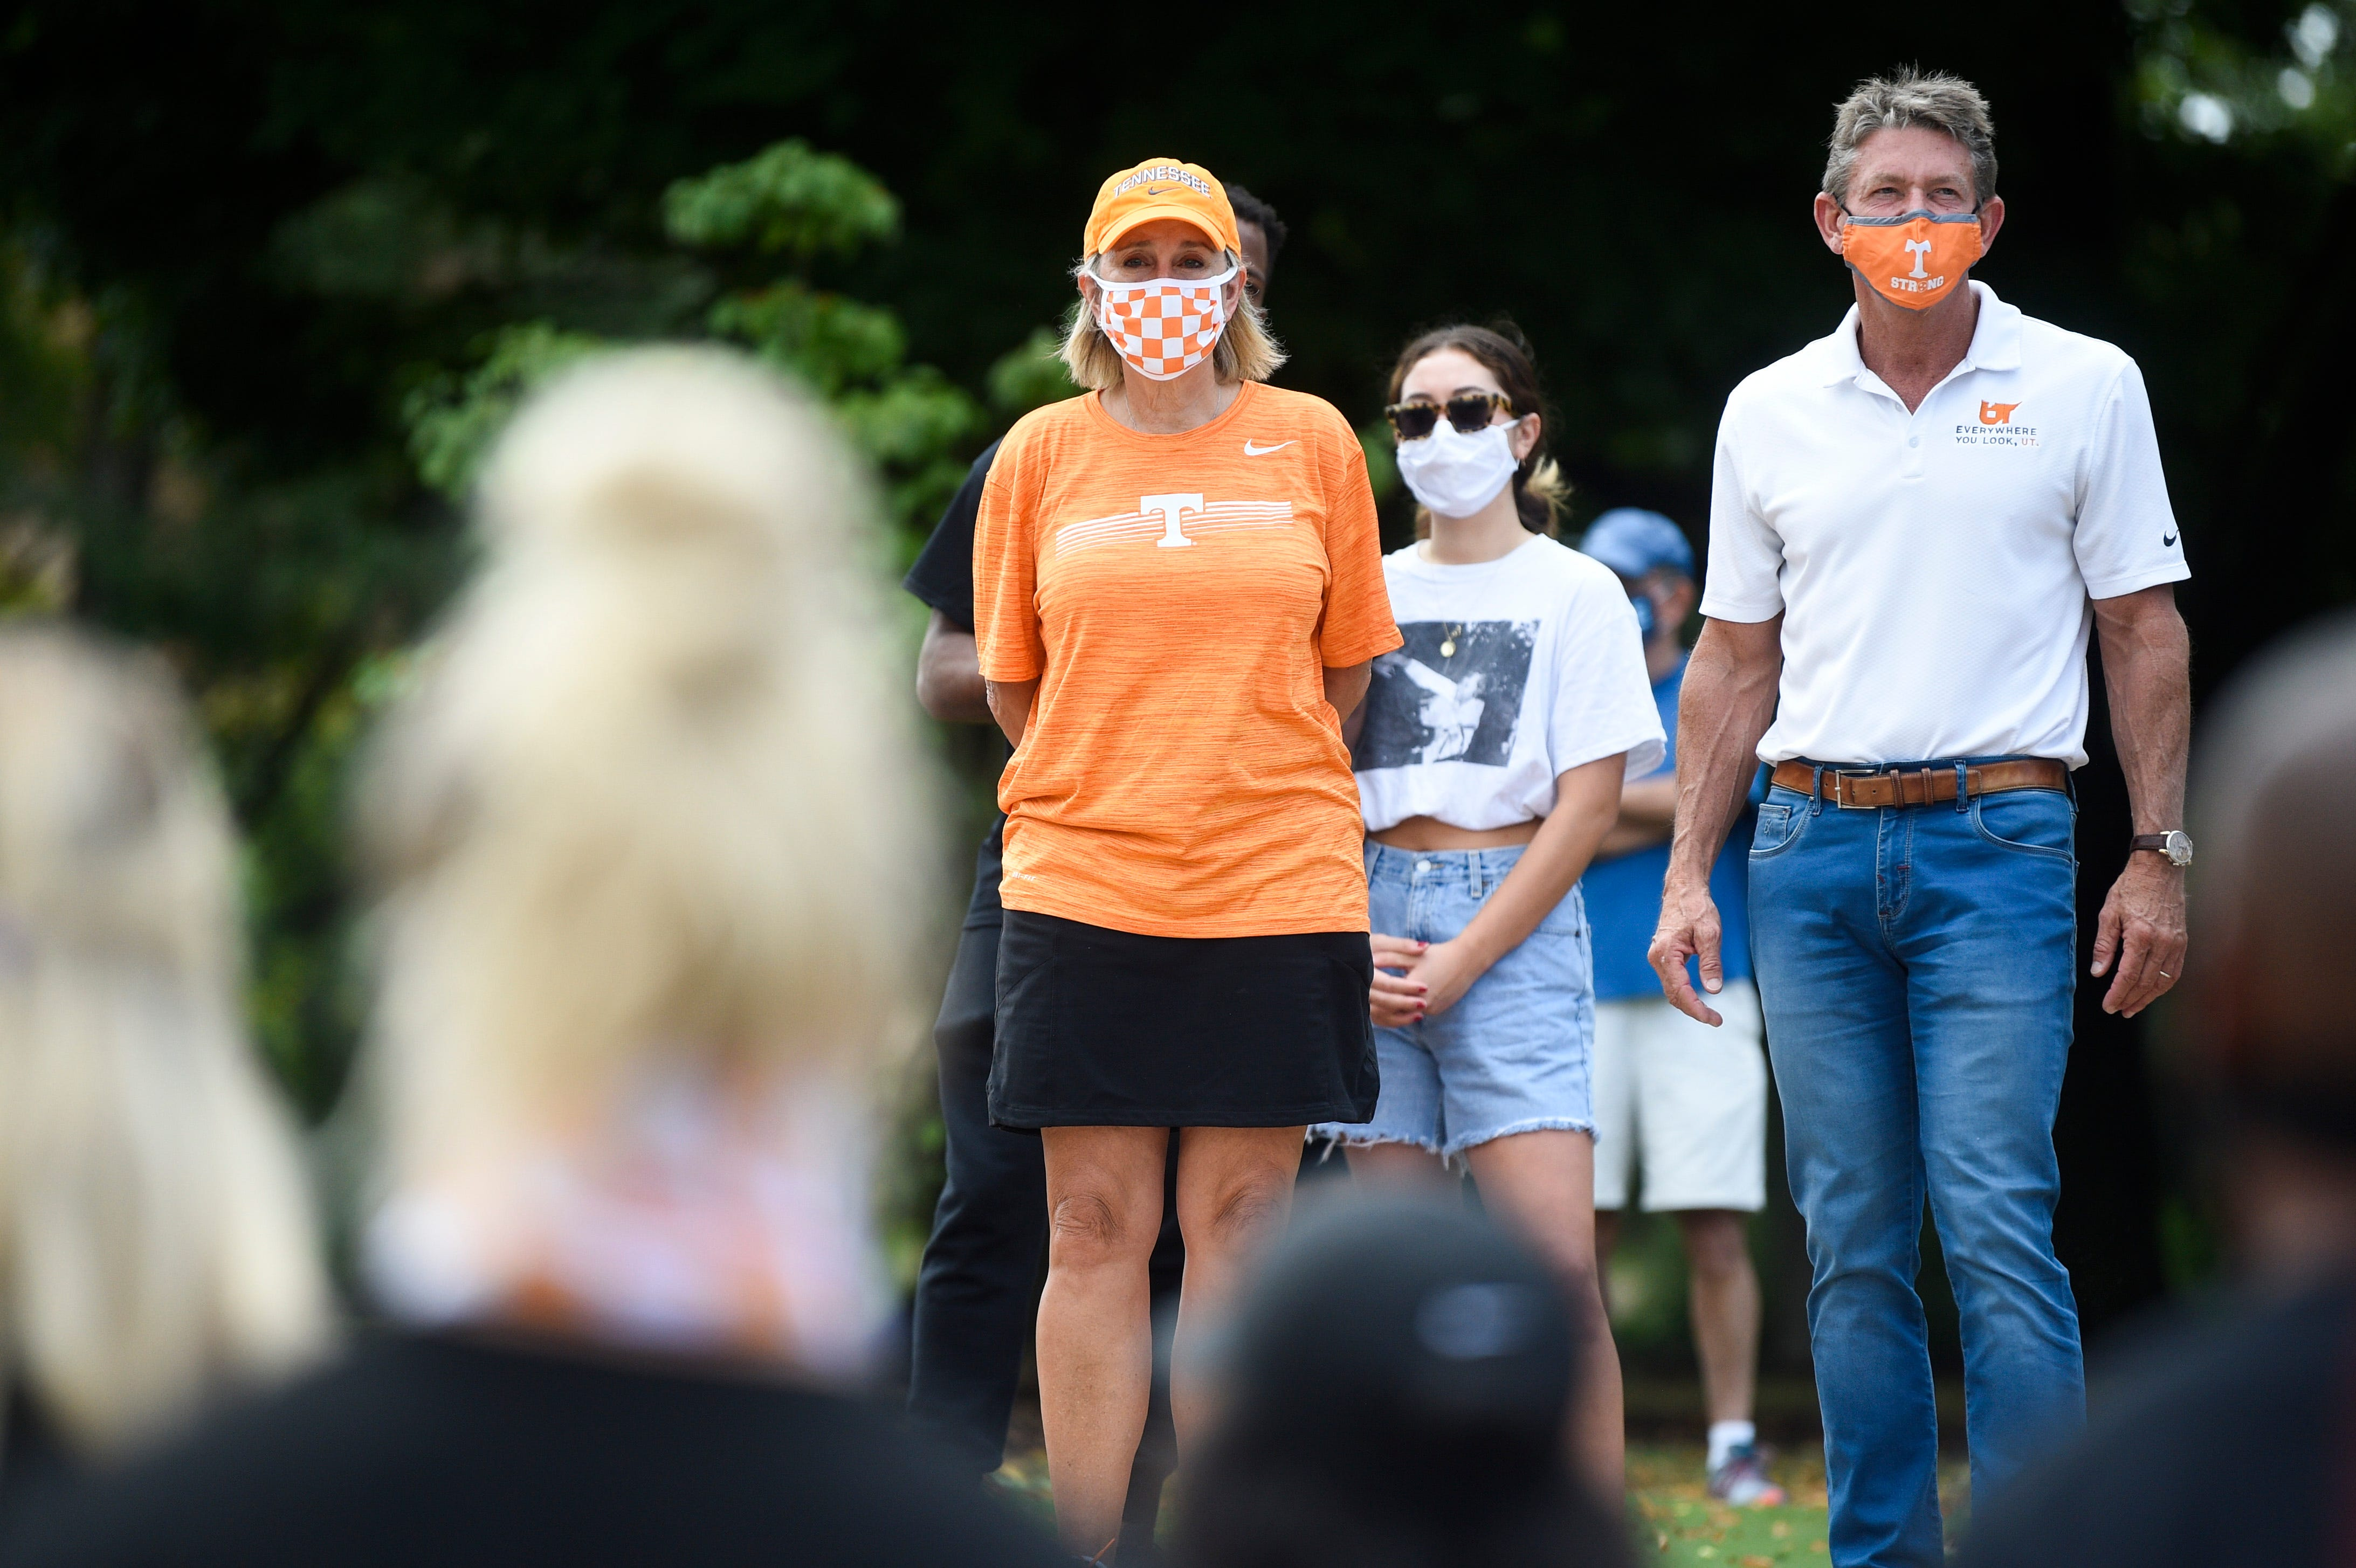 """University of Tennessee Chancellor Donde Plowman and UT System president Randy Boyd attended a march in August against systemic racism in America led by Black student-athletes on the Knoxville campus. """"They got to witness just how Black students were feeling and what it means to be an advocate for your community,"""" said Karmen Jones, Student Government Association president."""